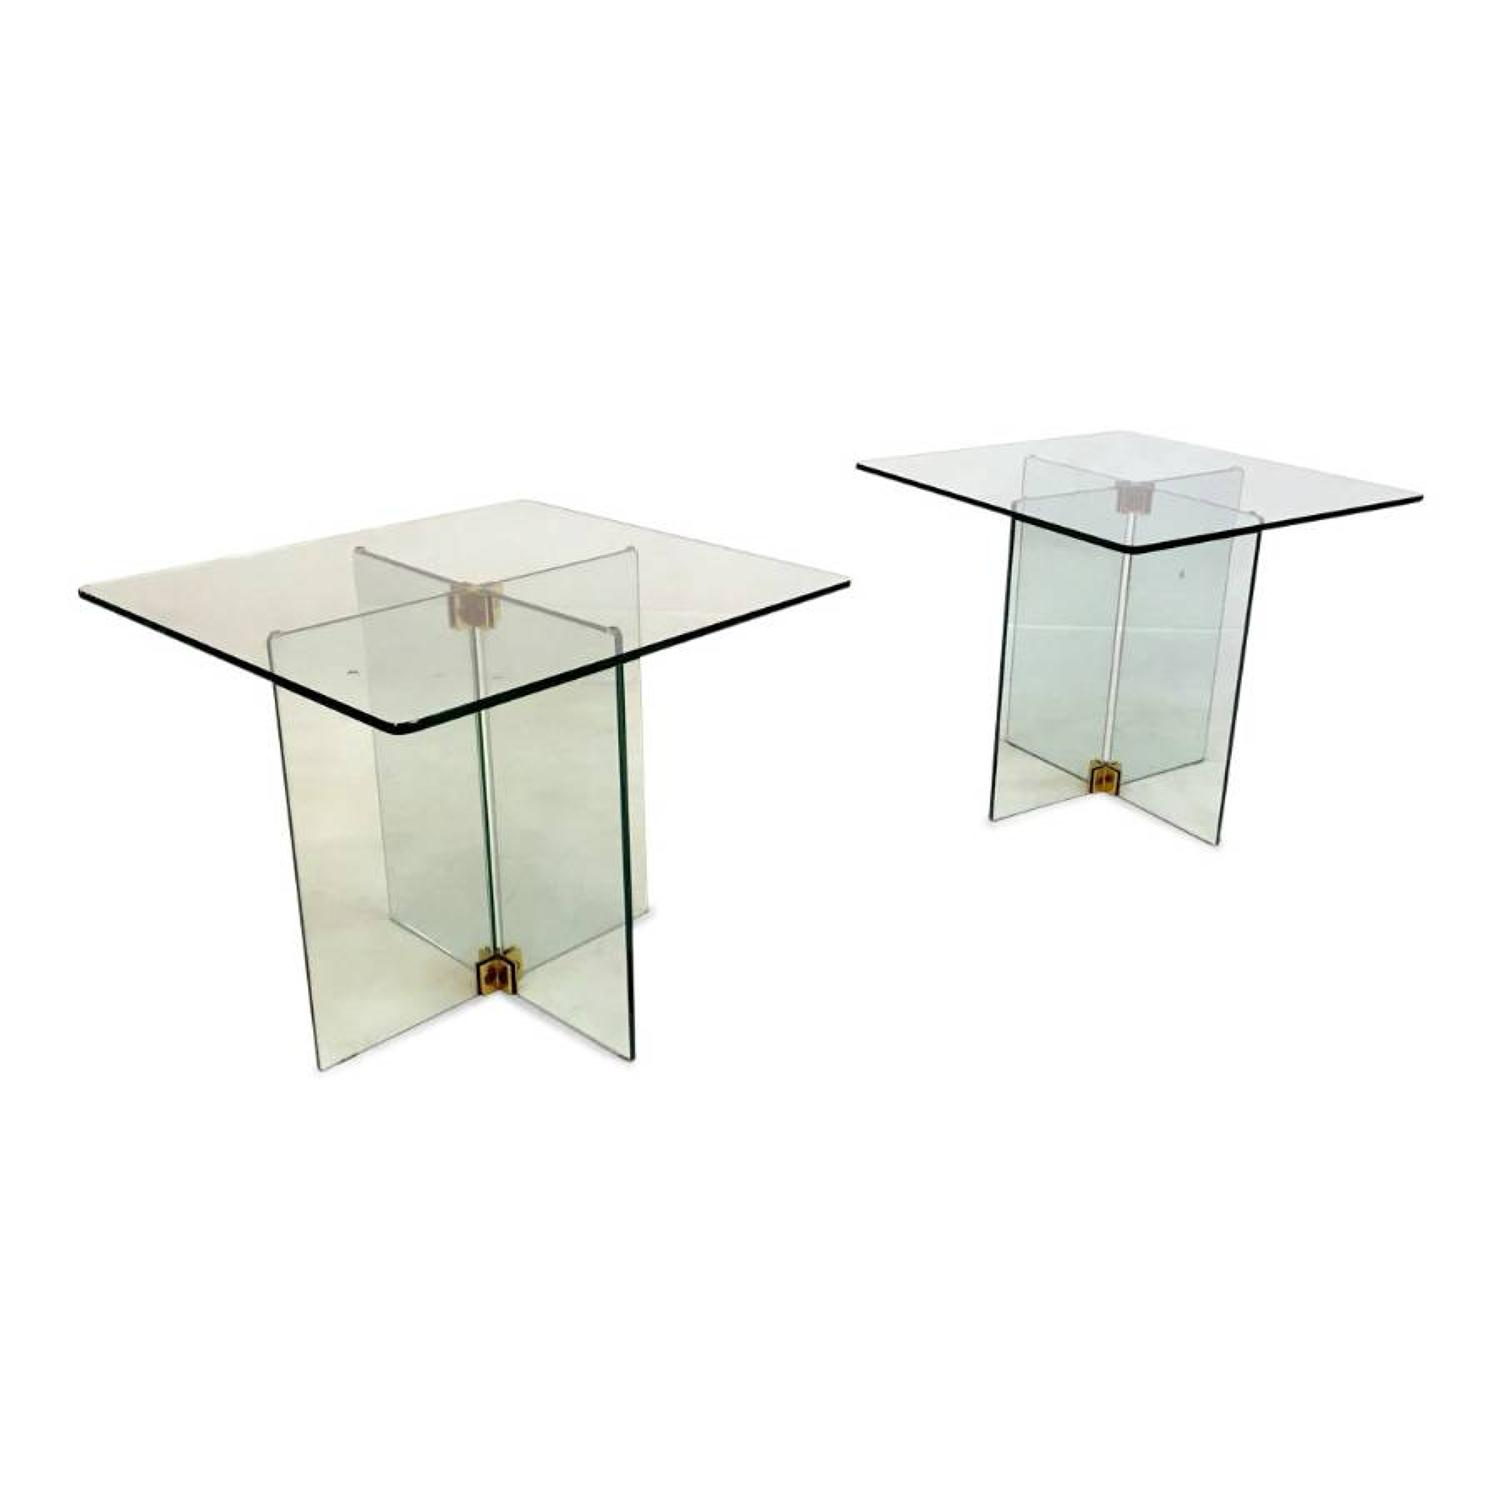 A pair of glass and brass side tables